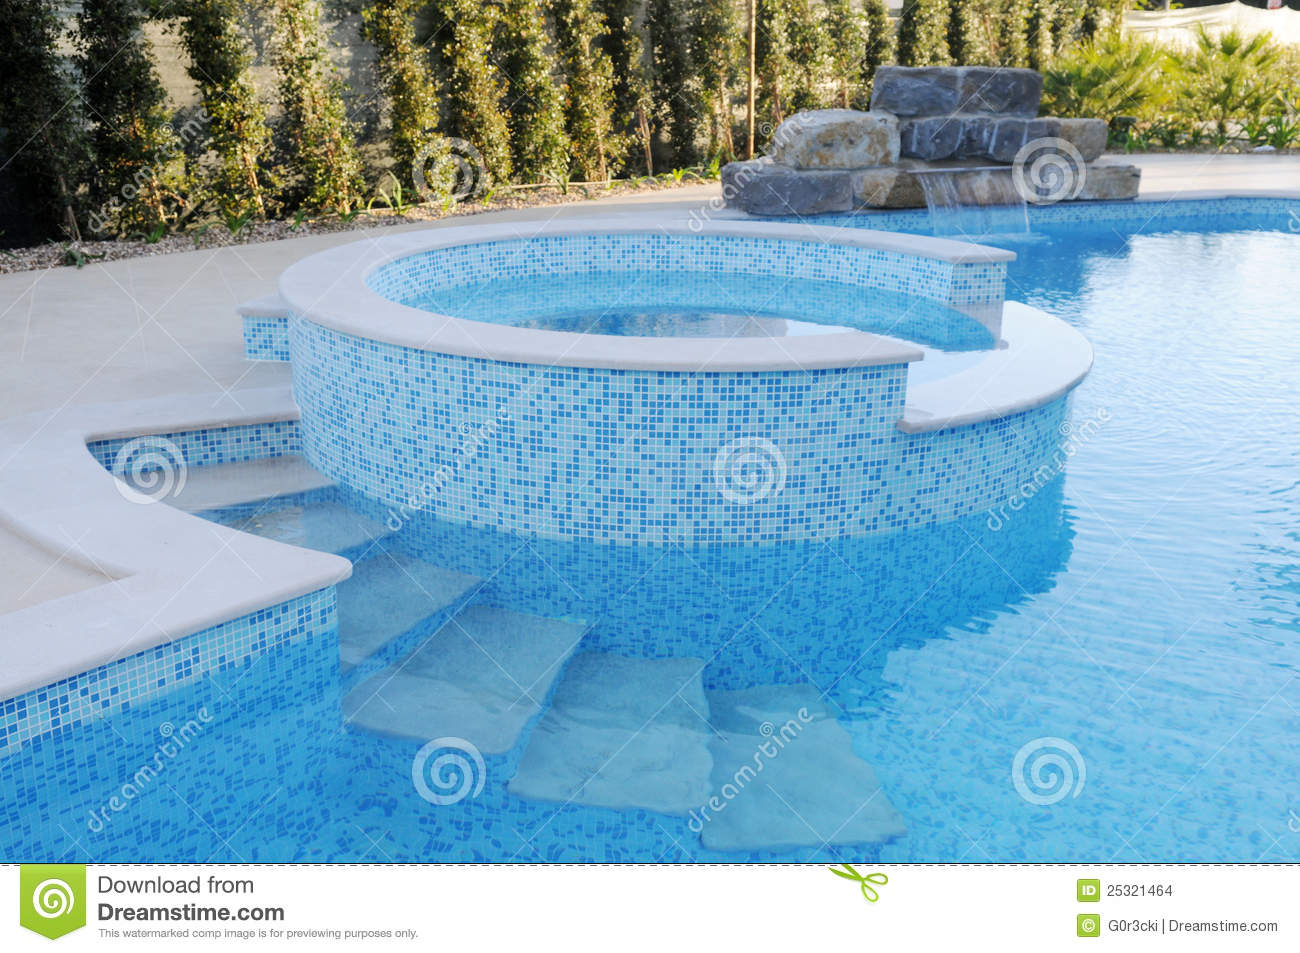 Pool With Blue Tiles Artificial Waterfall Round Kids